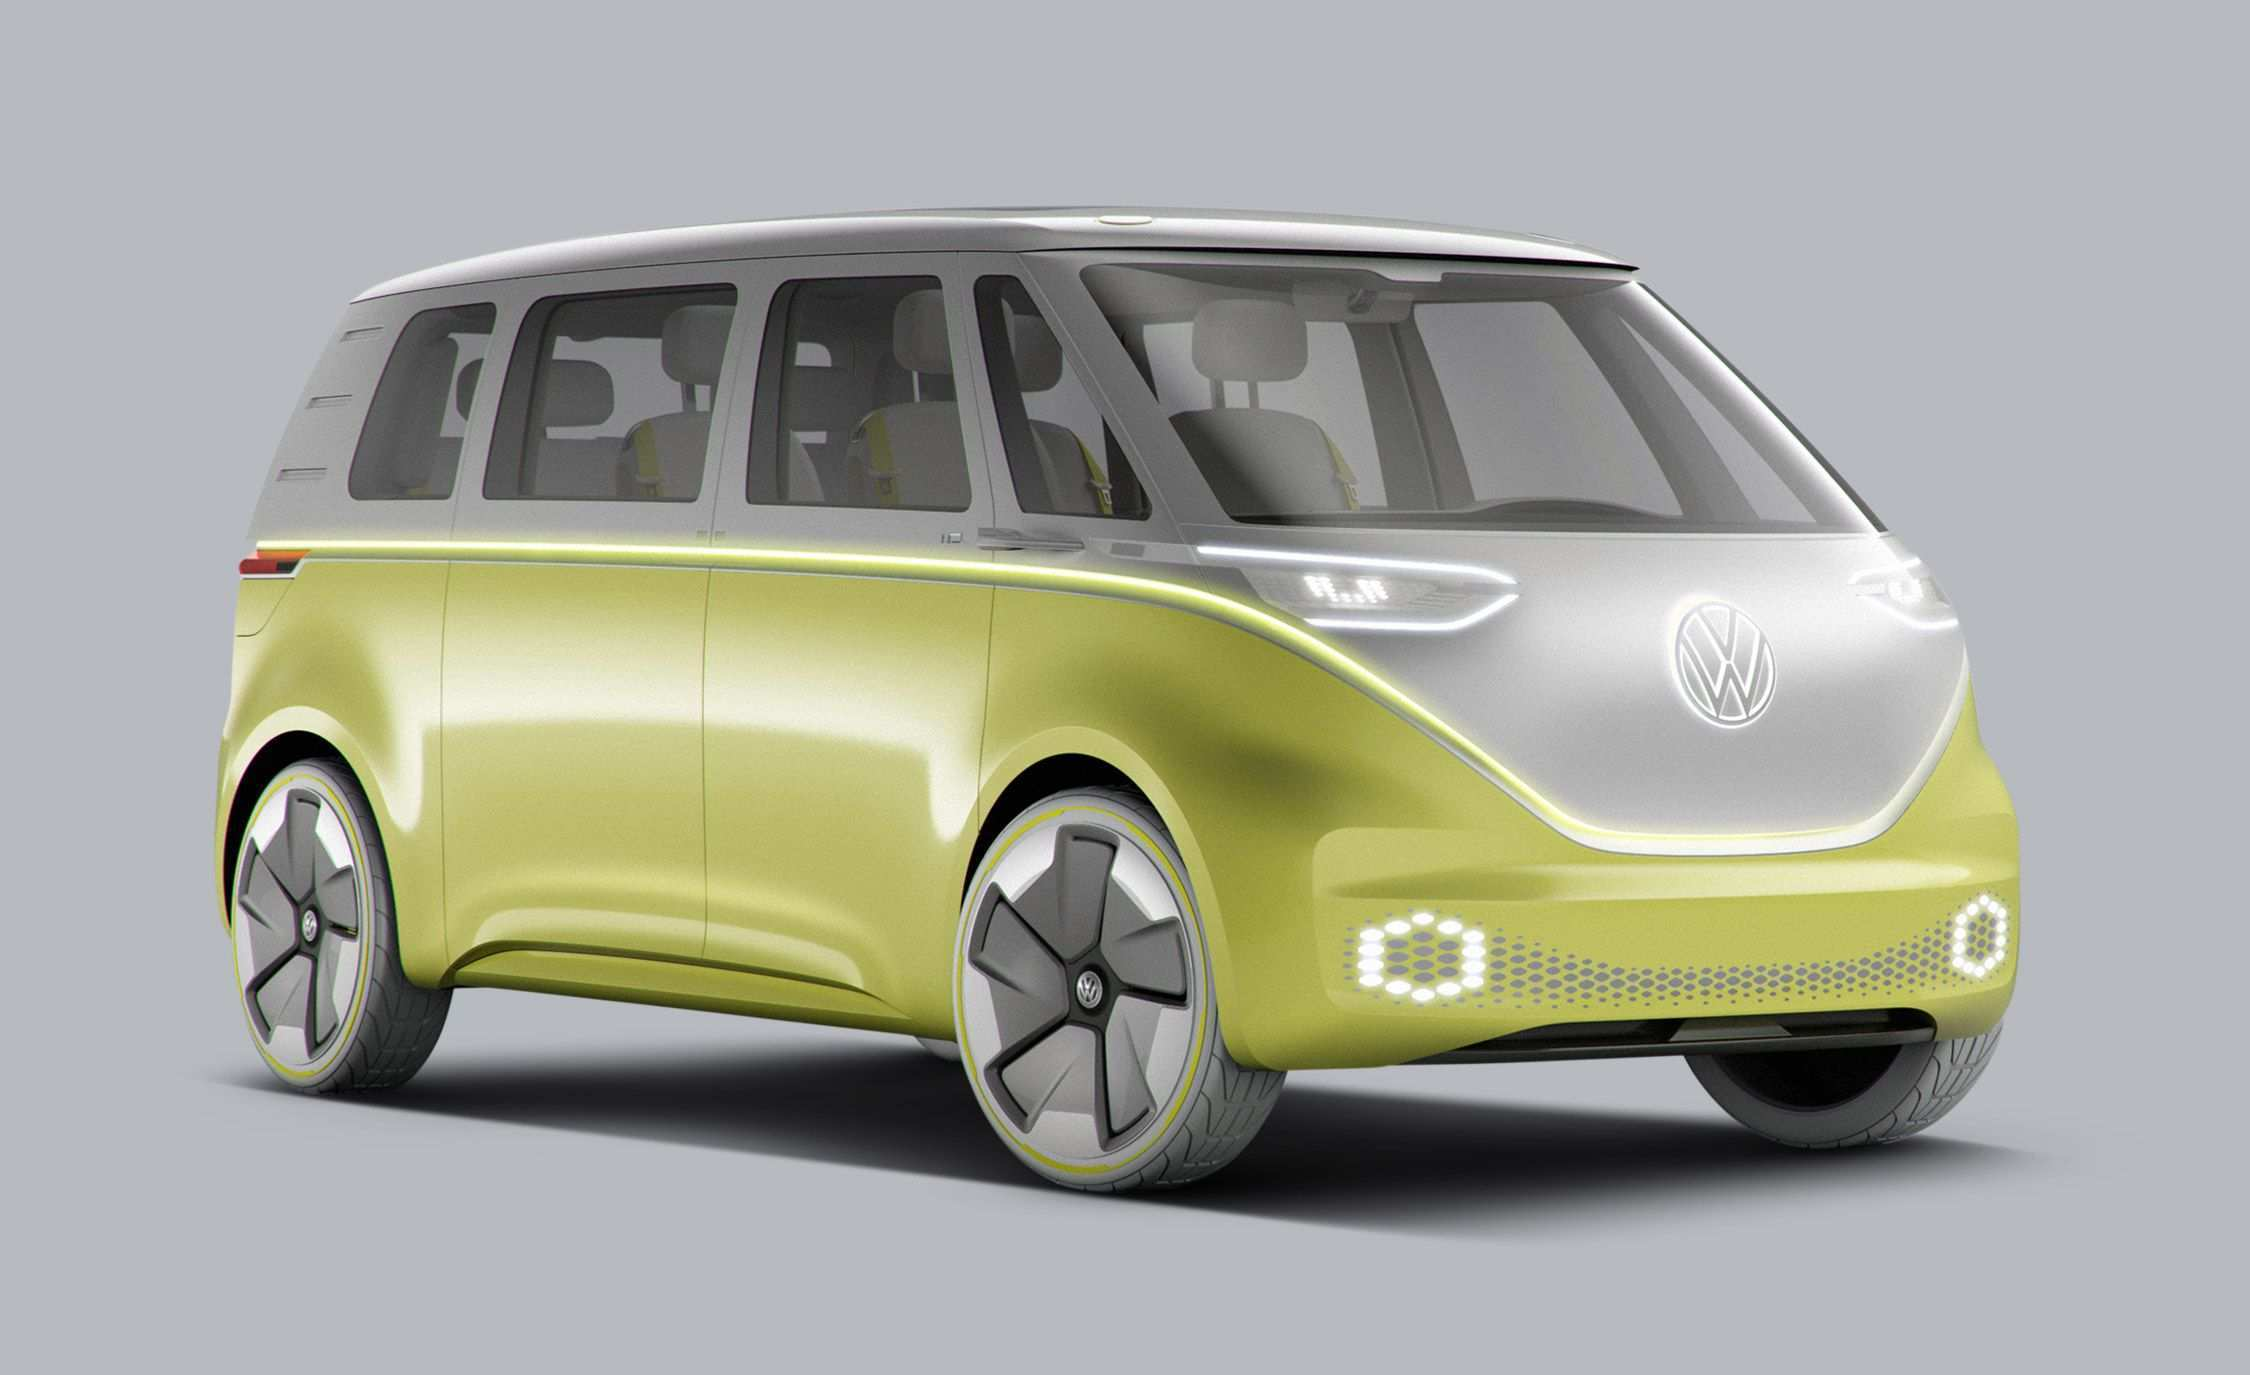 46 All New 2020 Volkswagen Bus Price Exterior and Interior by 2020 Volkswagen Bus Price